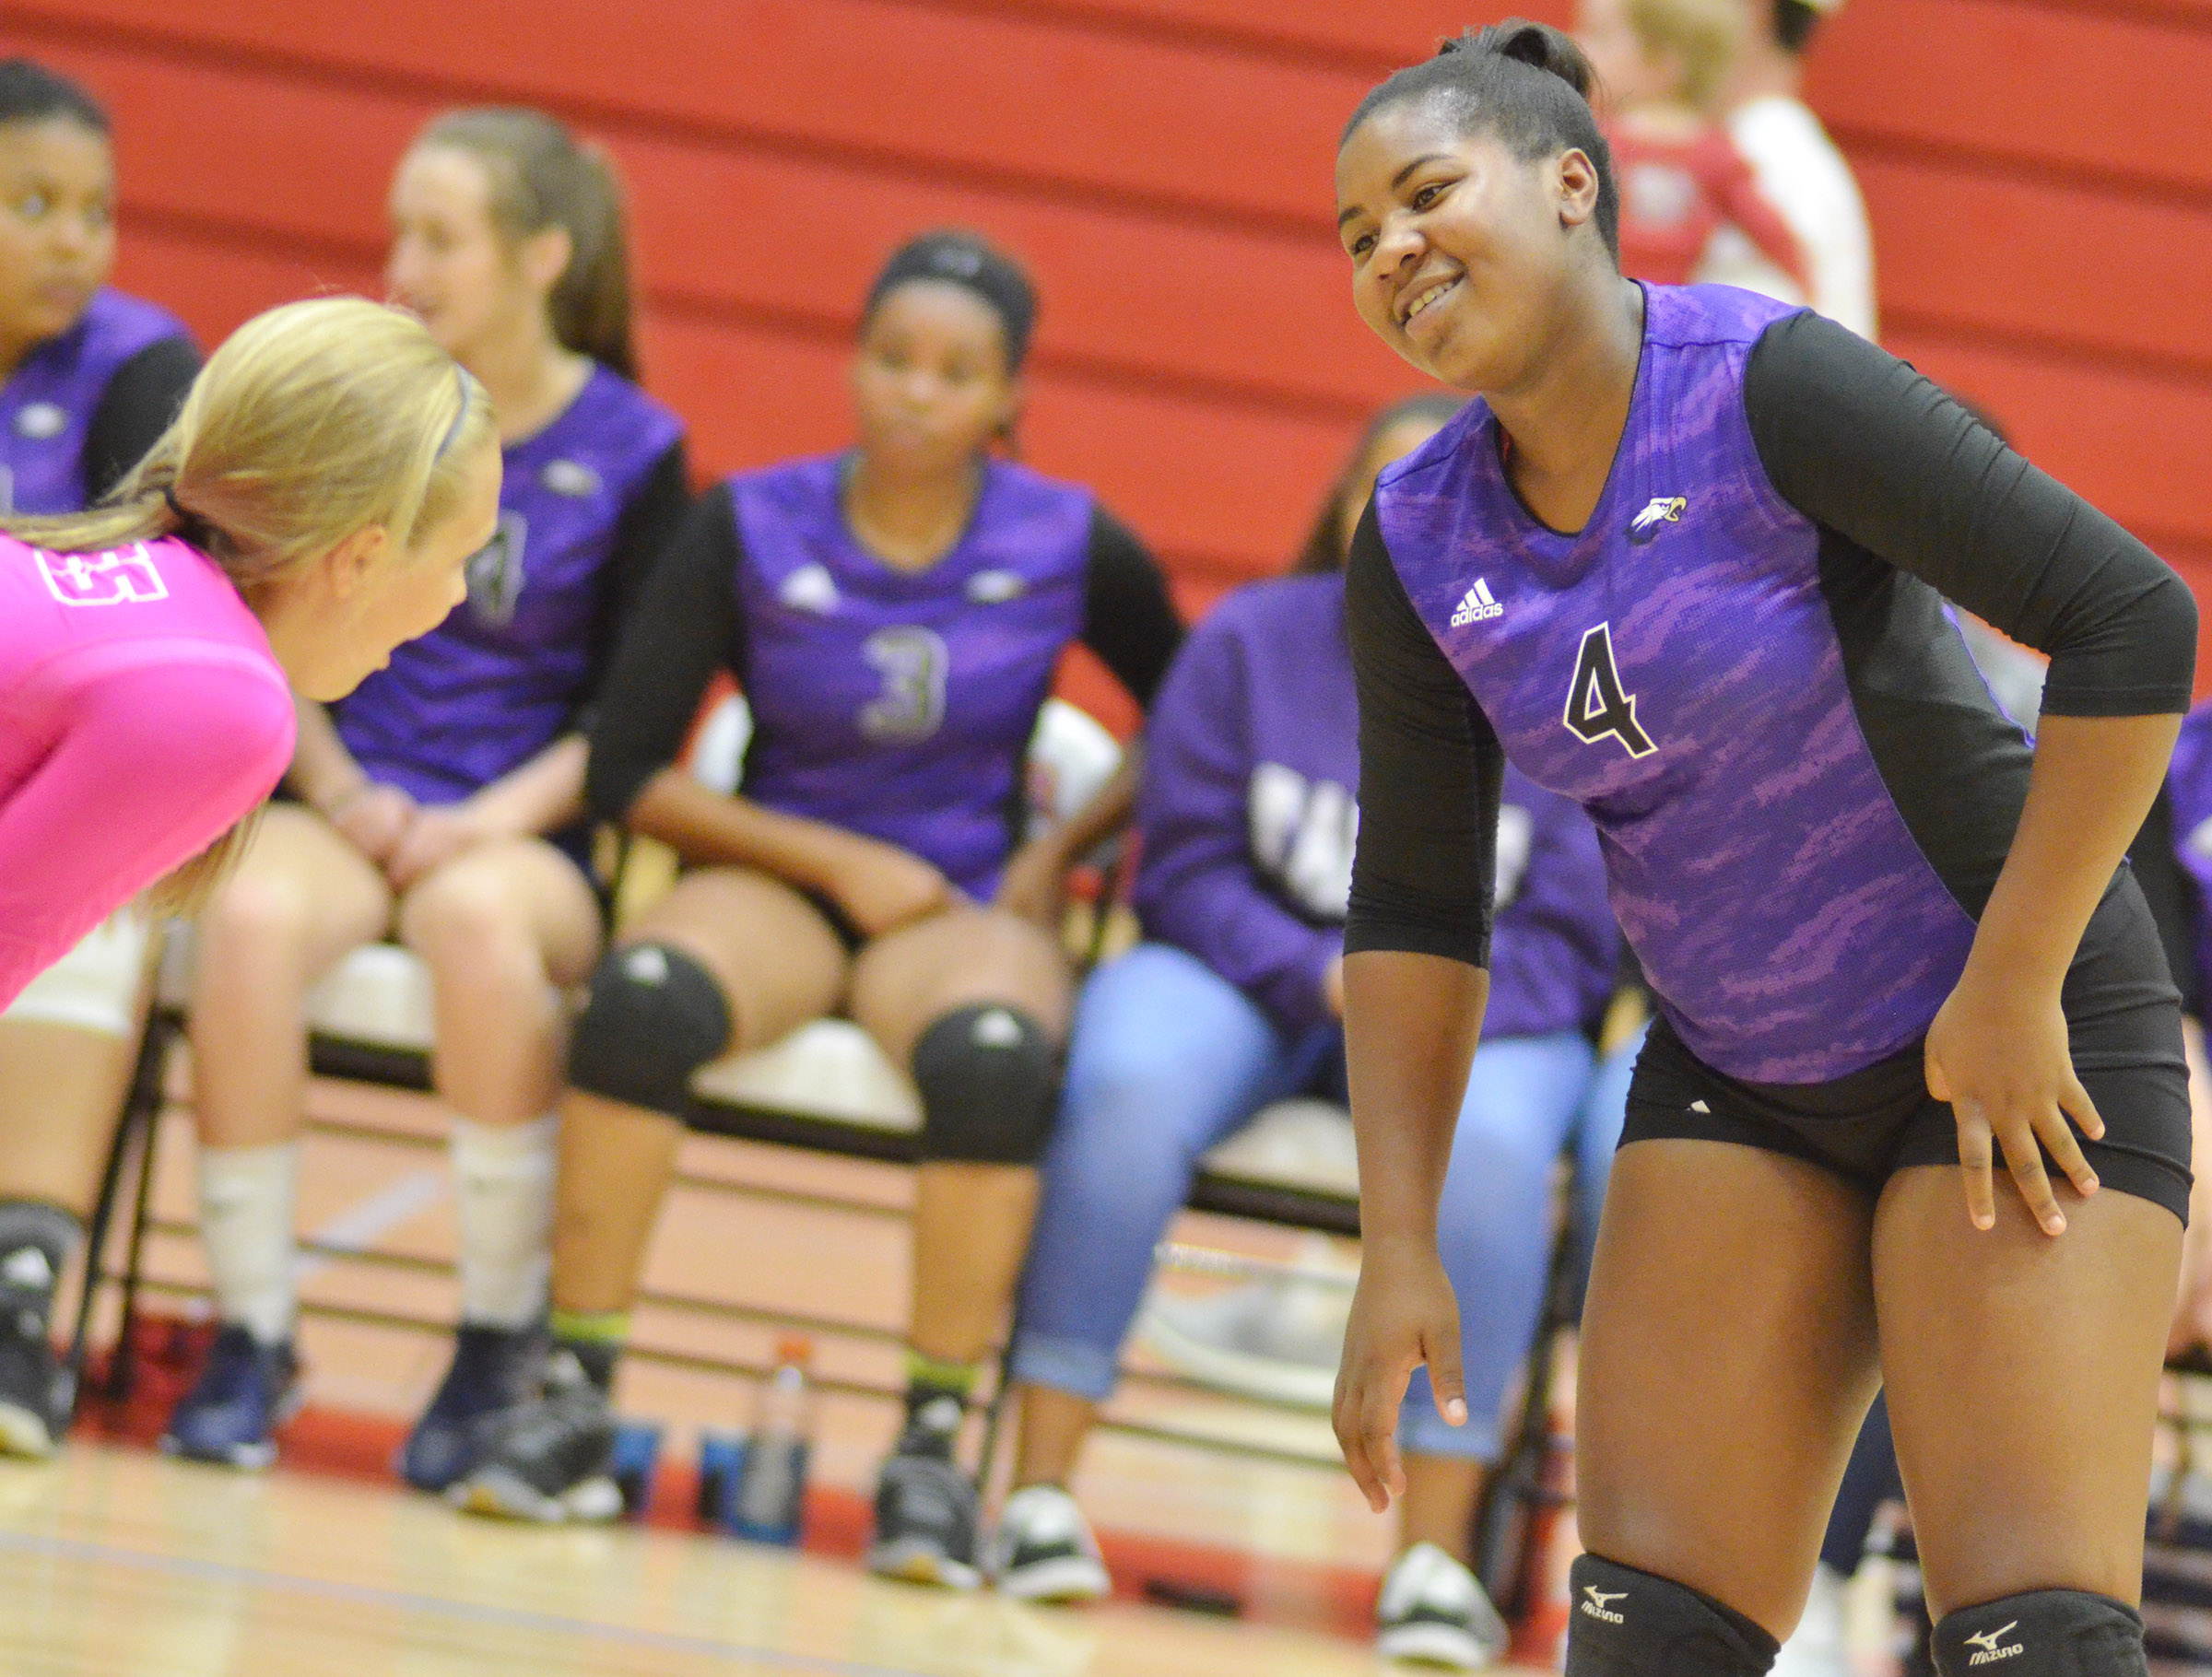 CHS senior Nena Barnett talks to junior Tatem Wiseman before a play.